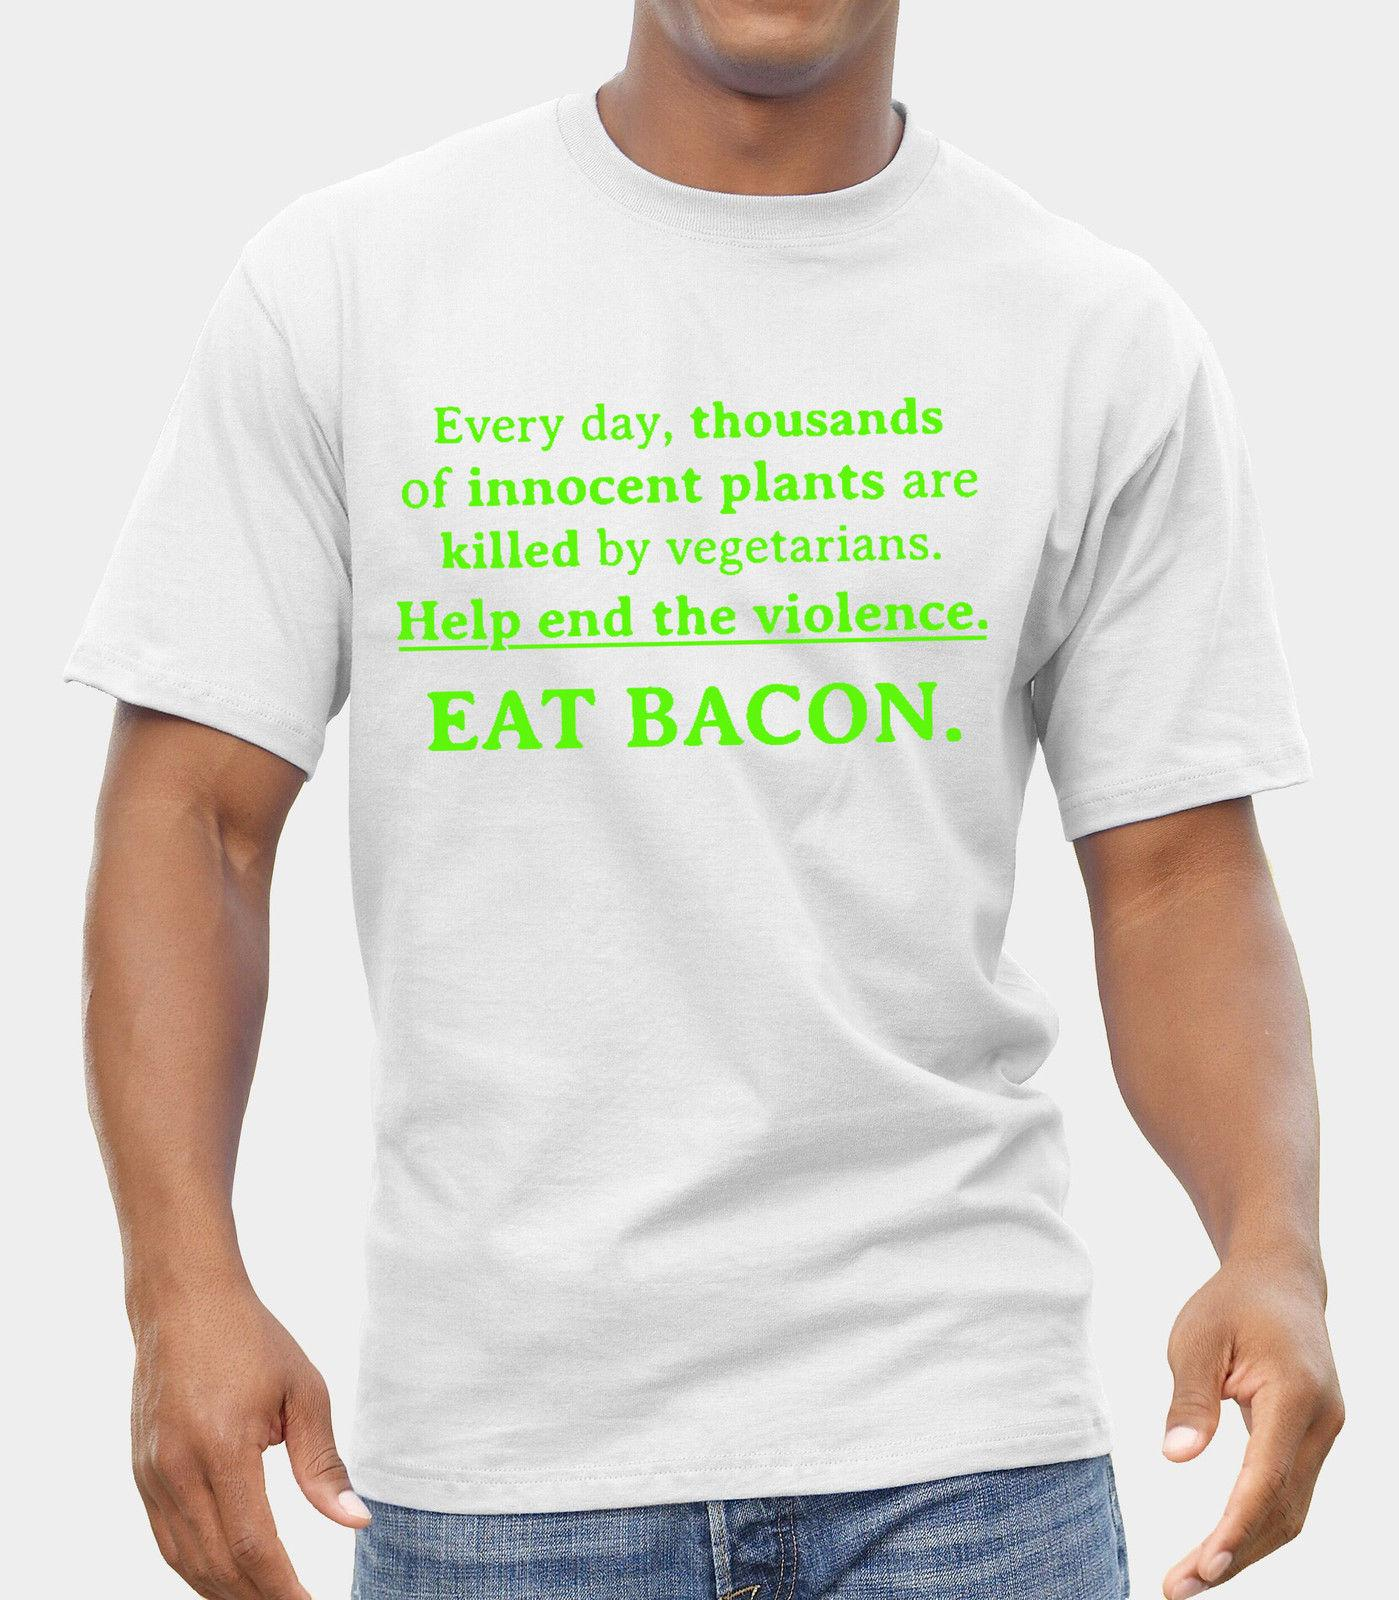 e0c0b2b6 Eat Bacon Mens Funny T Shirt Fathers Day Gift For Dad Birthday Print T  Shirt Men Short Sleeve TOP TEE Fashion Summer Top Tee Men'S T Shirt Shirts  T Shirts T ...